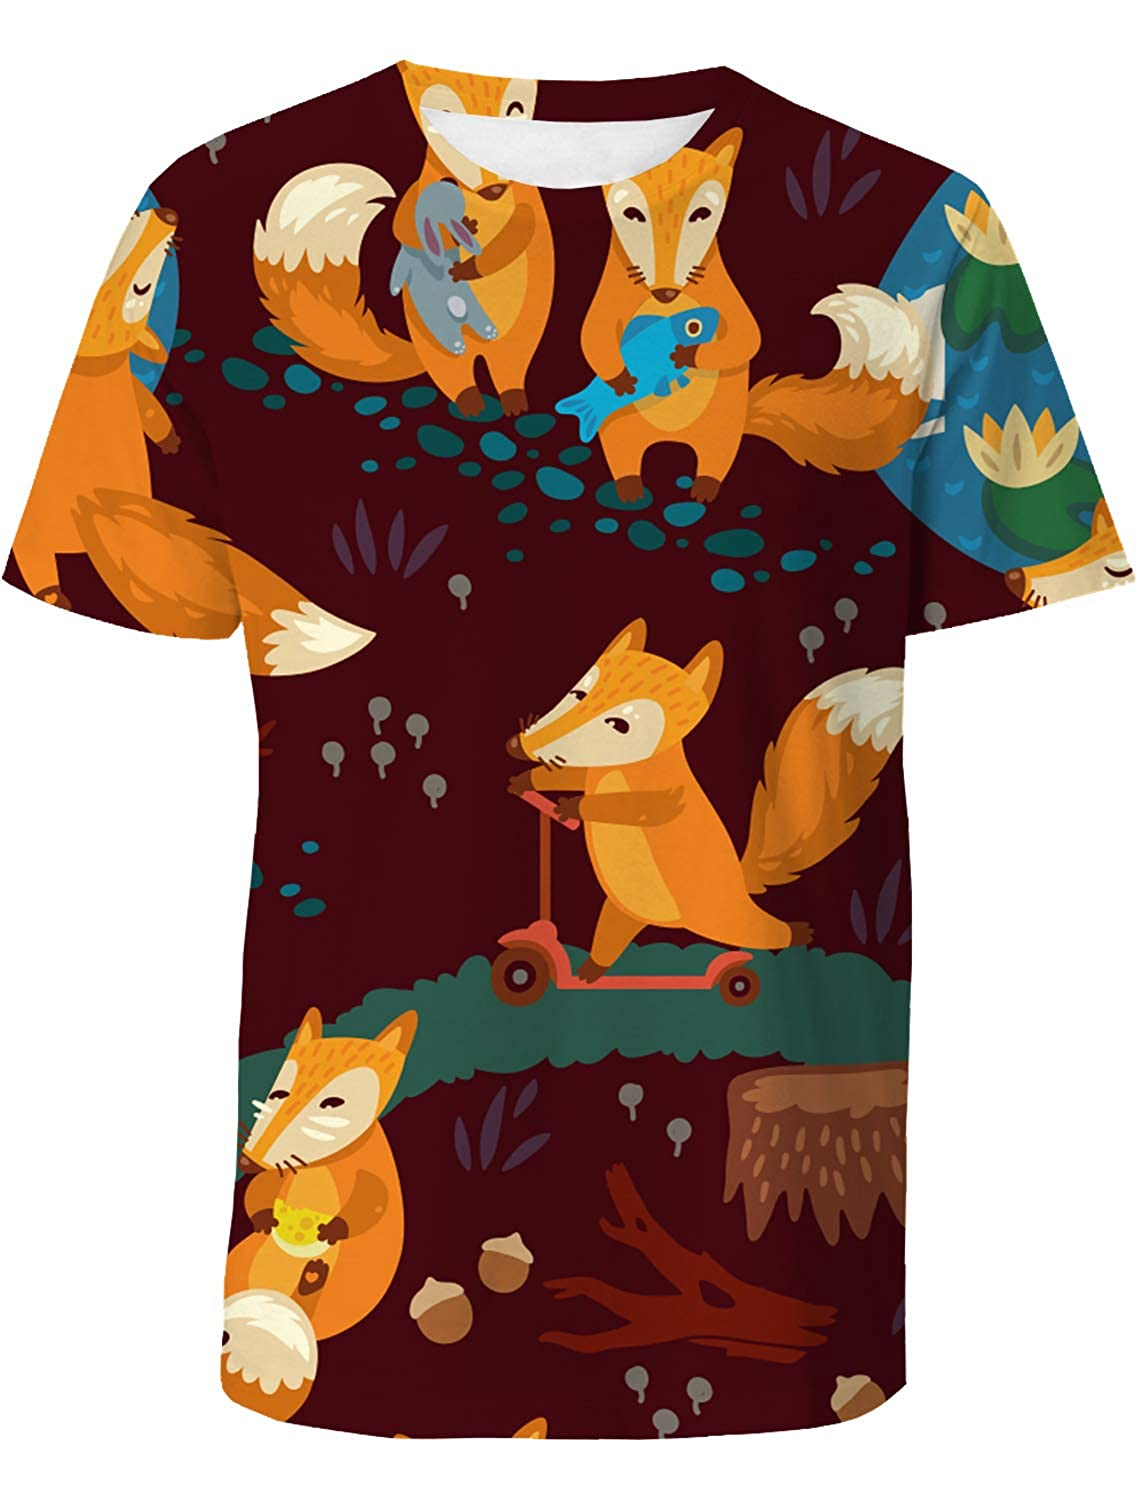 EZON-CH Mens Short-Sleeve Crewneck T-Shirt,Assorted Fashion 3D Printing Male Blouse Tee Tops,Cartoon Fox for Youth,